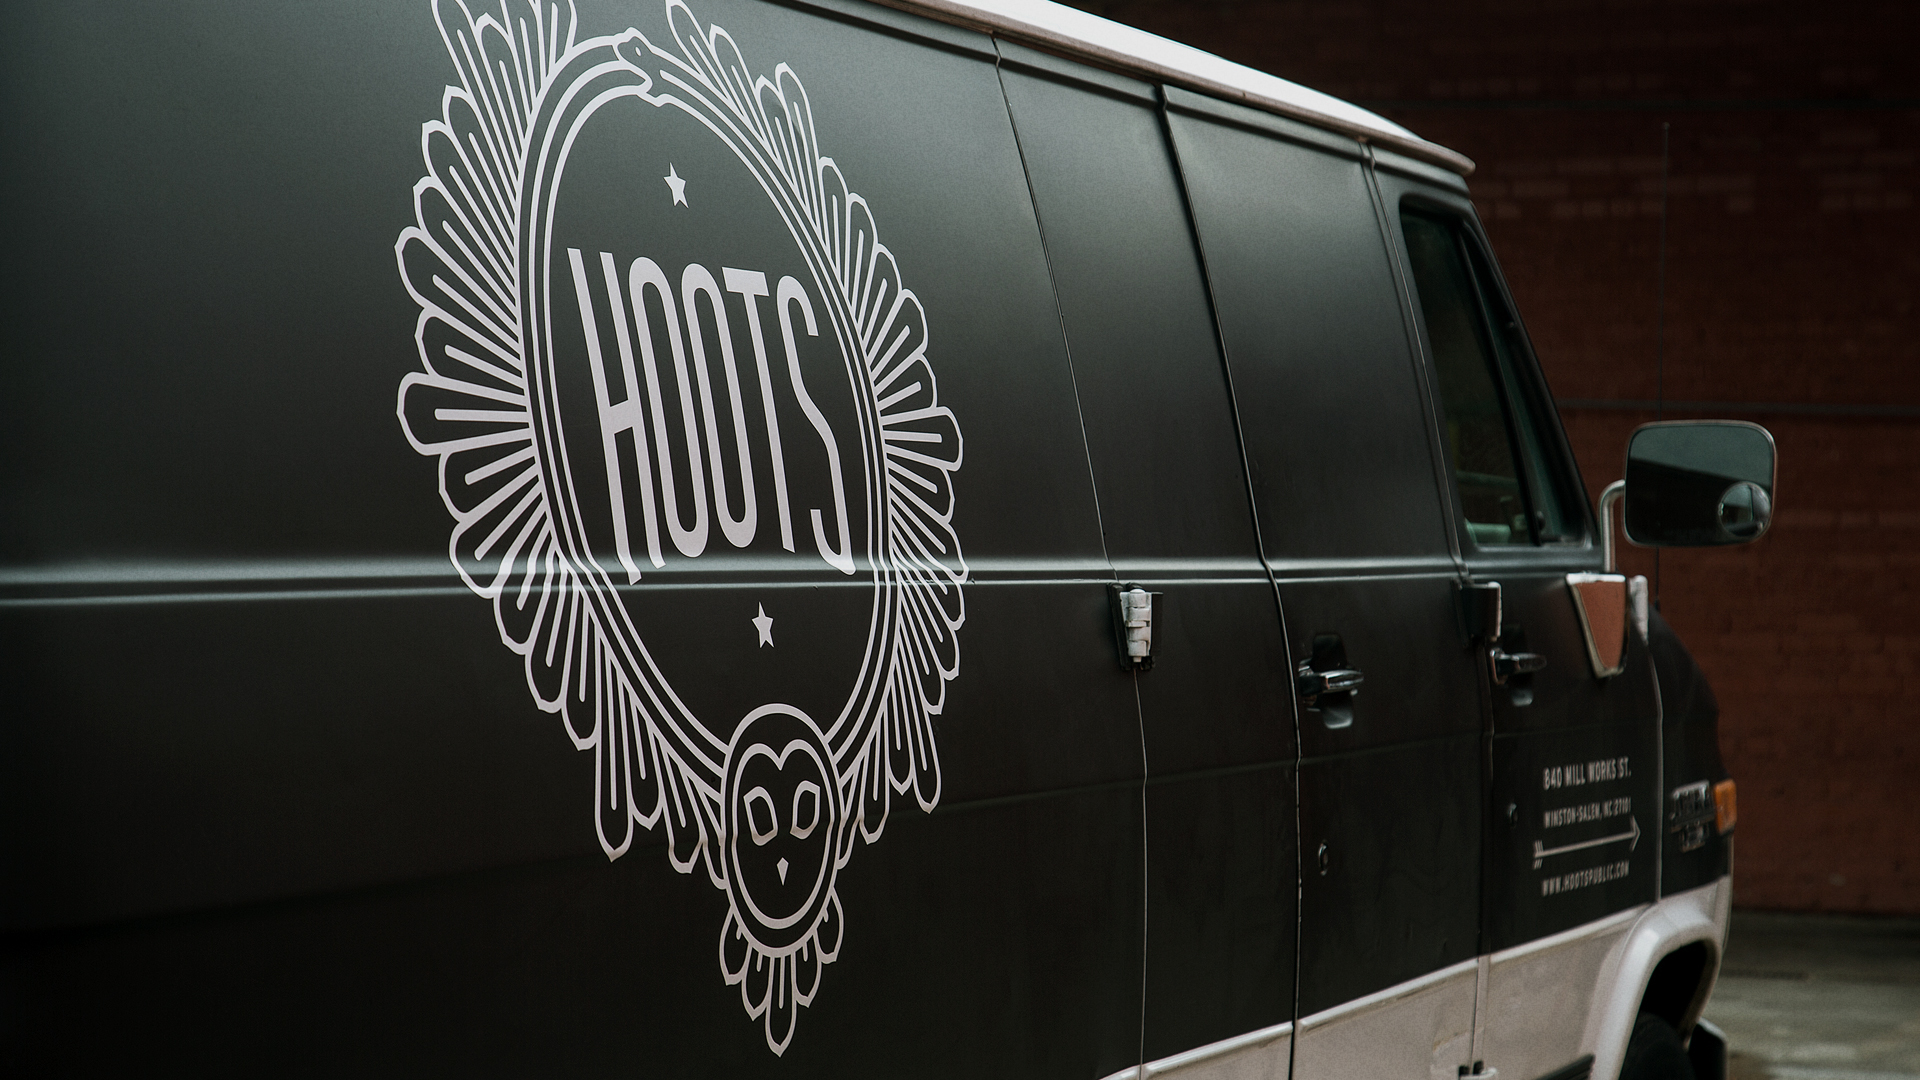 Hoots Van Side Detail Alt